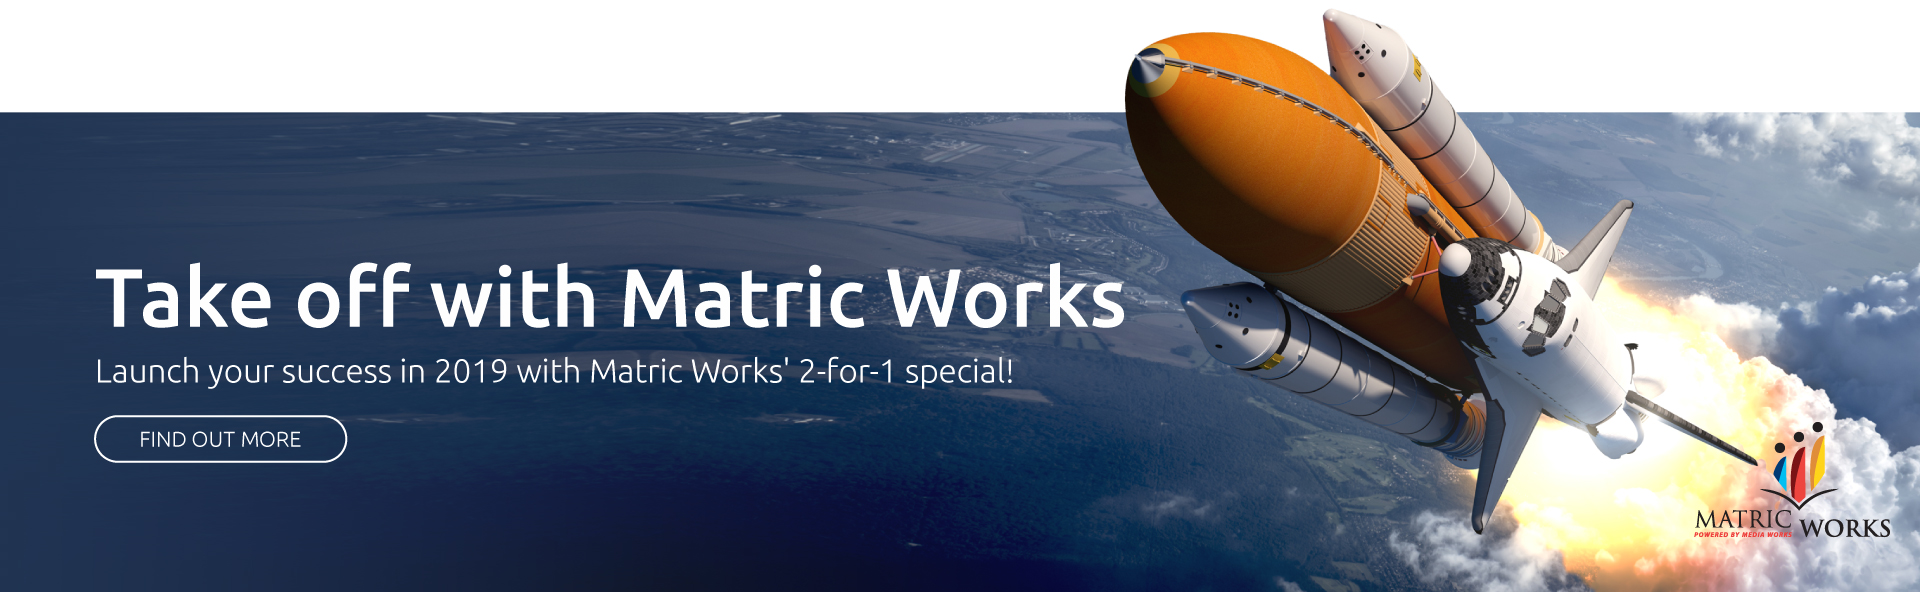 Matric Works - it's never too late to learn banner